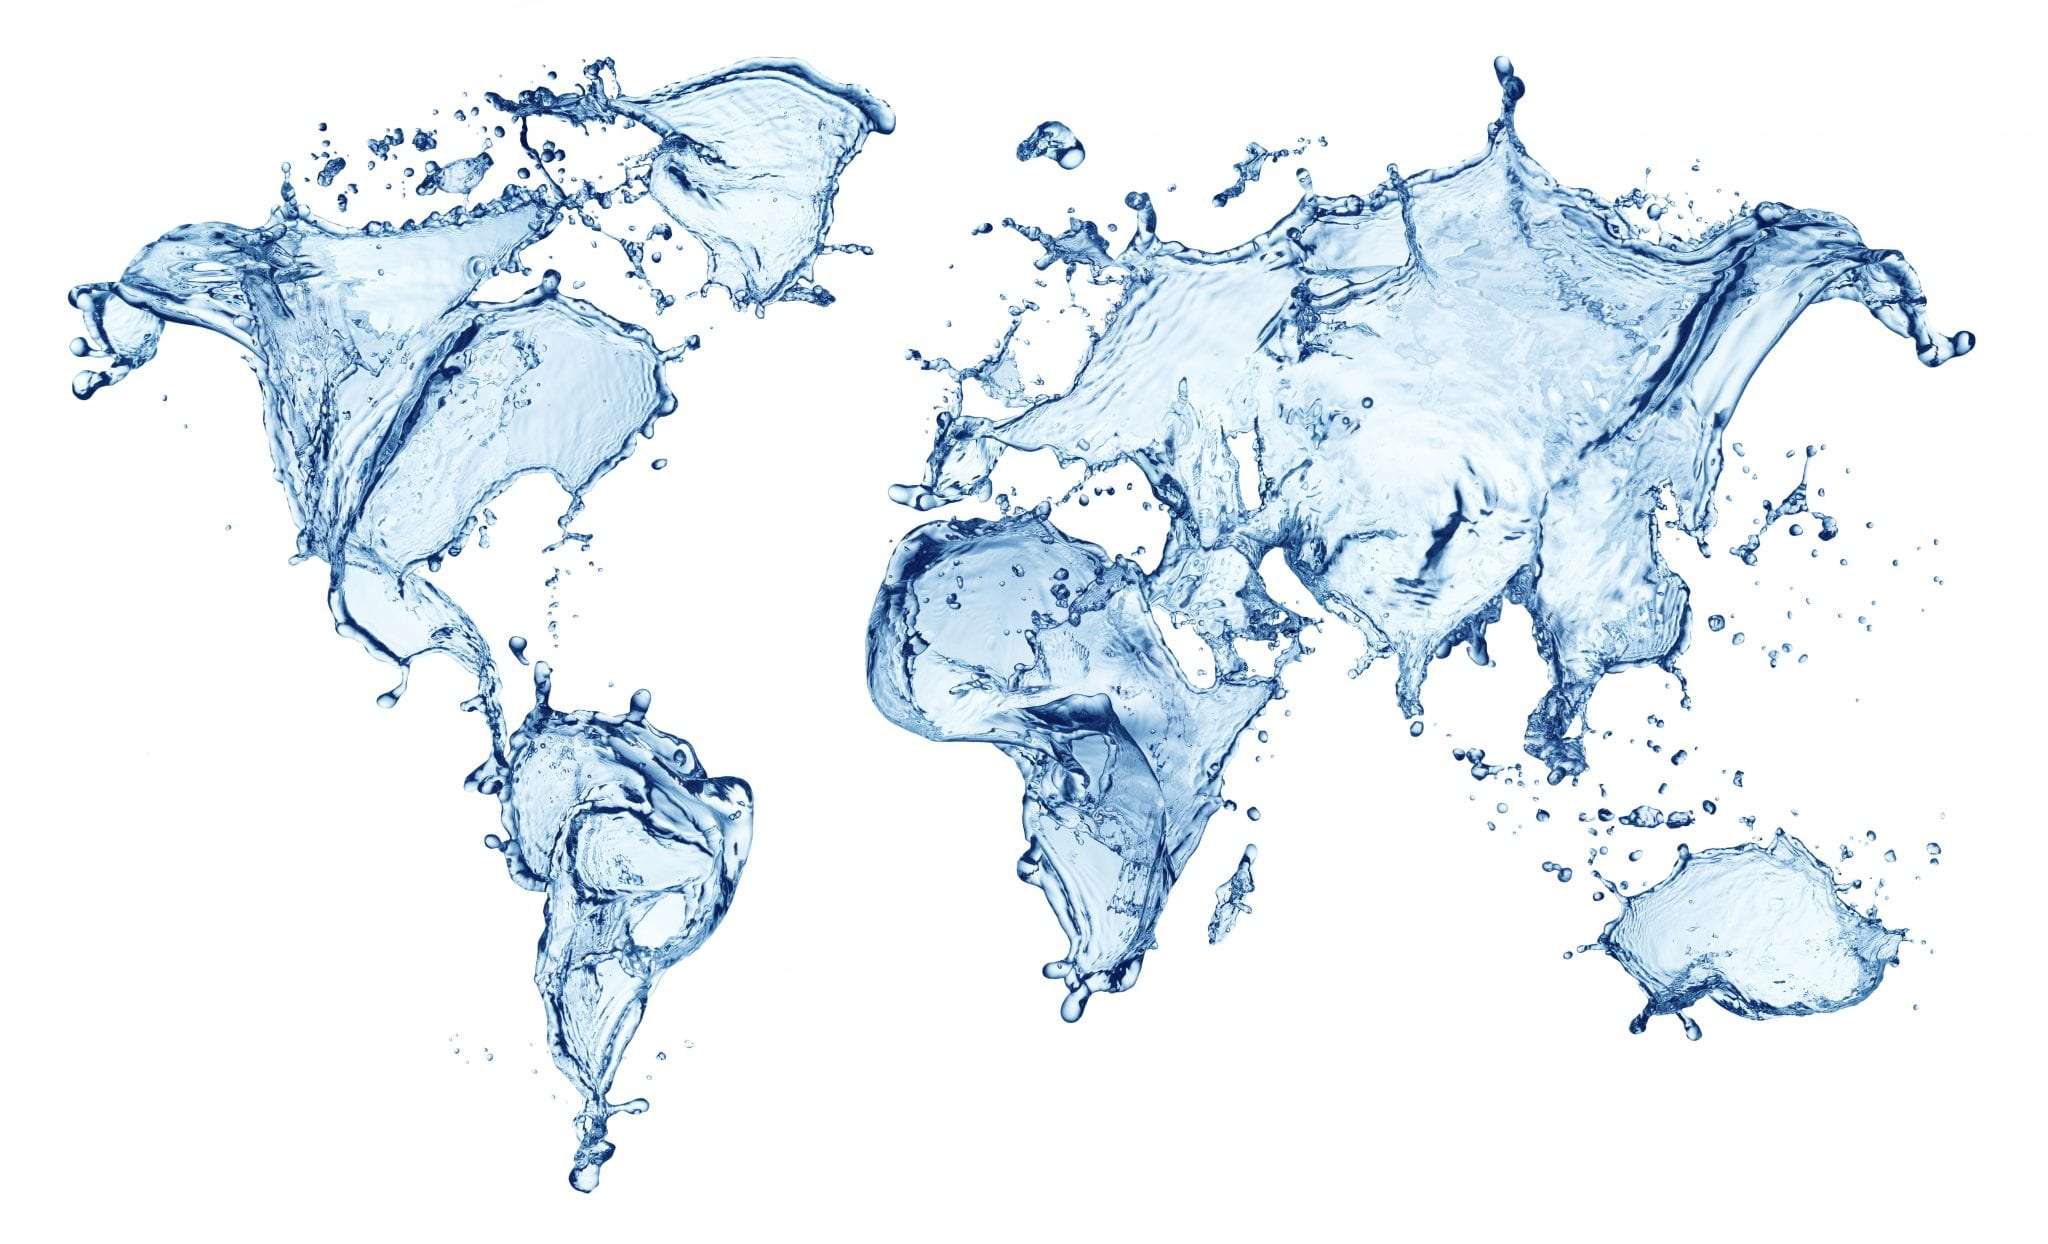 World water week 2015 focuses on development and you can get last year the conference hosted over 3000 experts decision makers and advocates from the worlds scientific business and government communities gumiabroncs Image collections